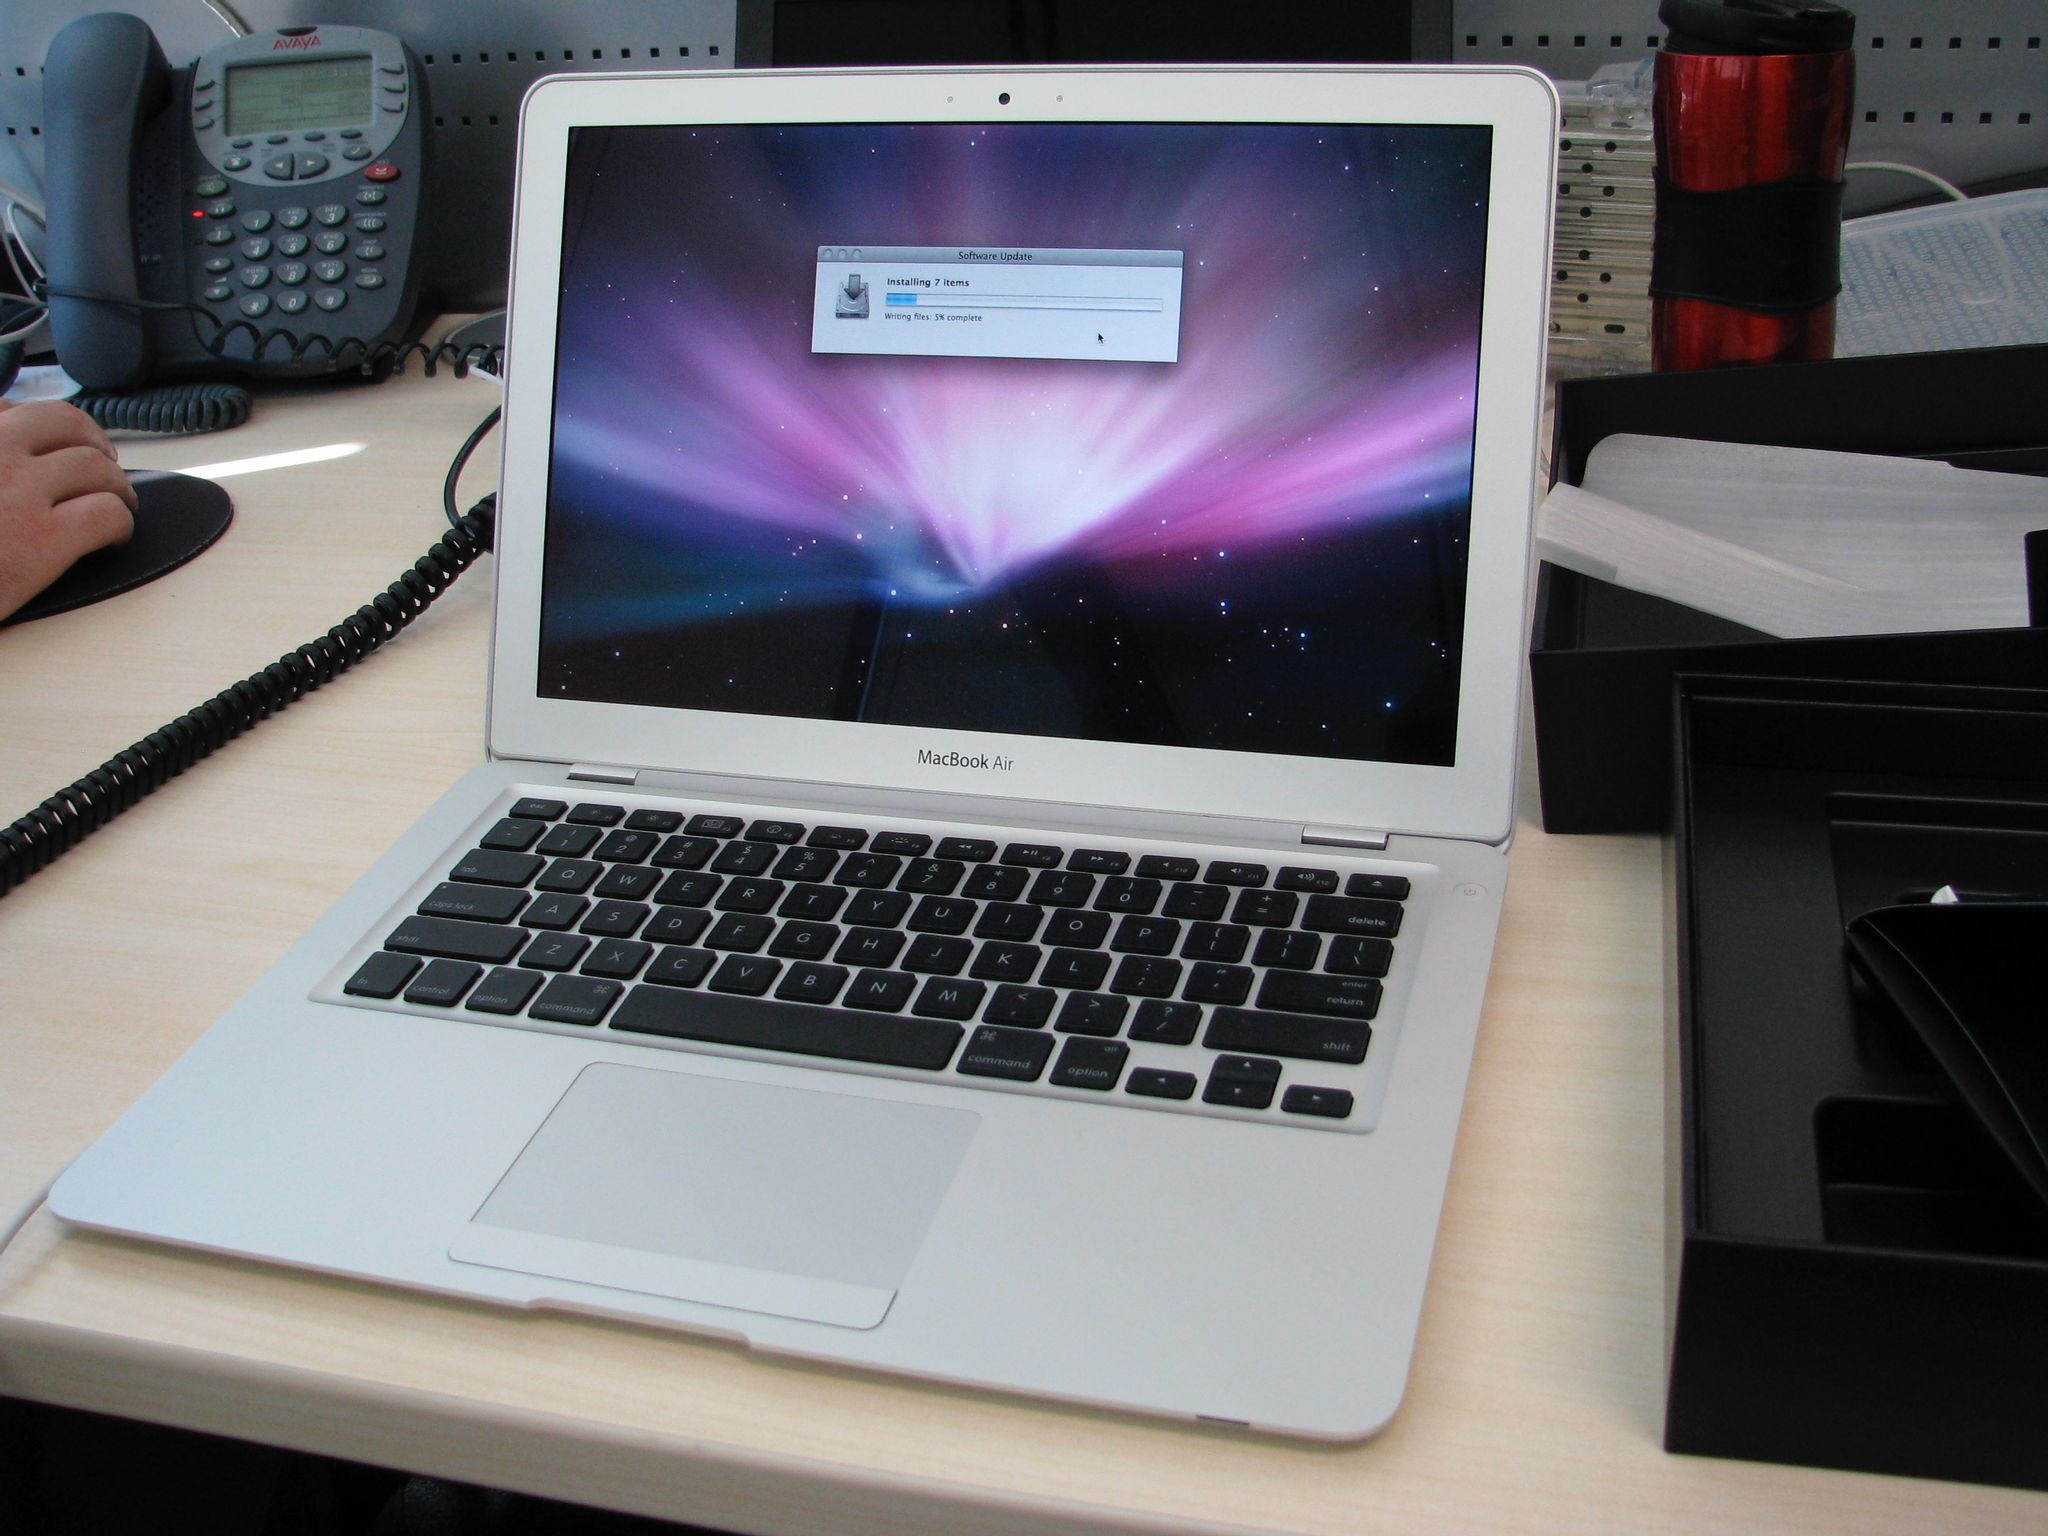 A photo of a first-generation MacBook Air on the Installing Mac OS screen.